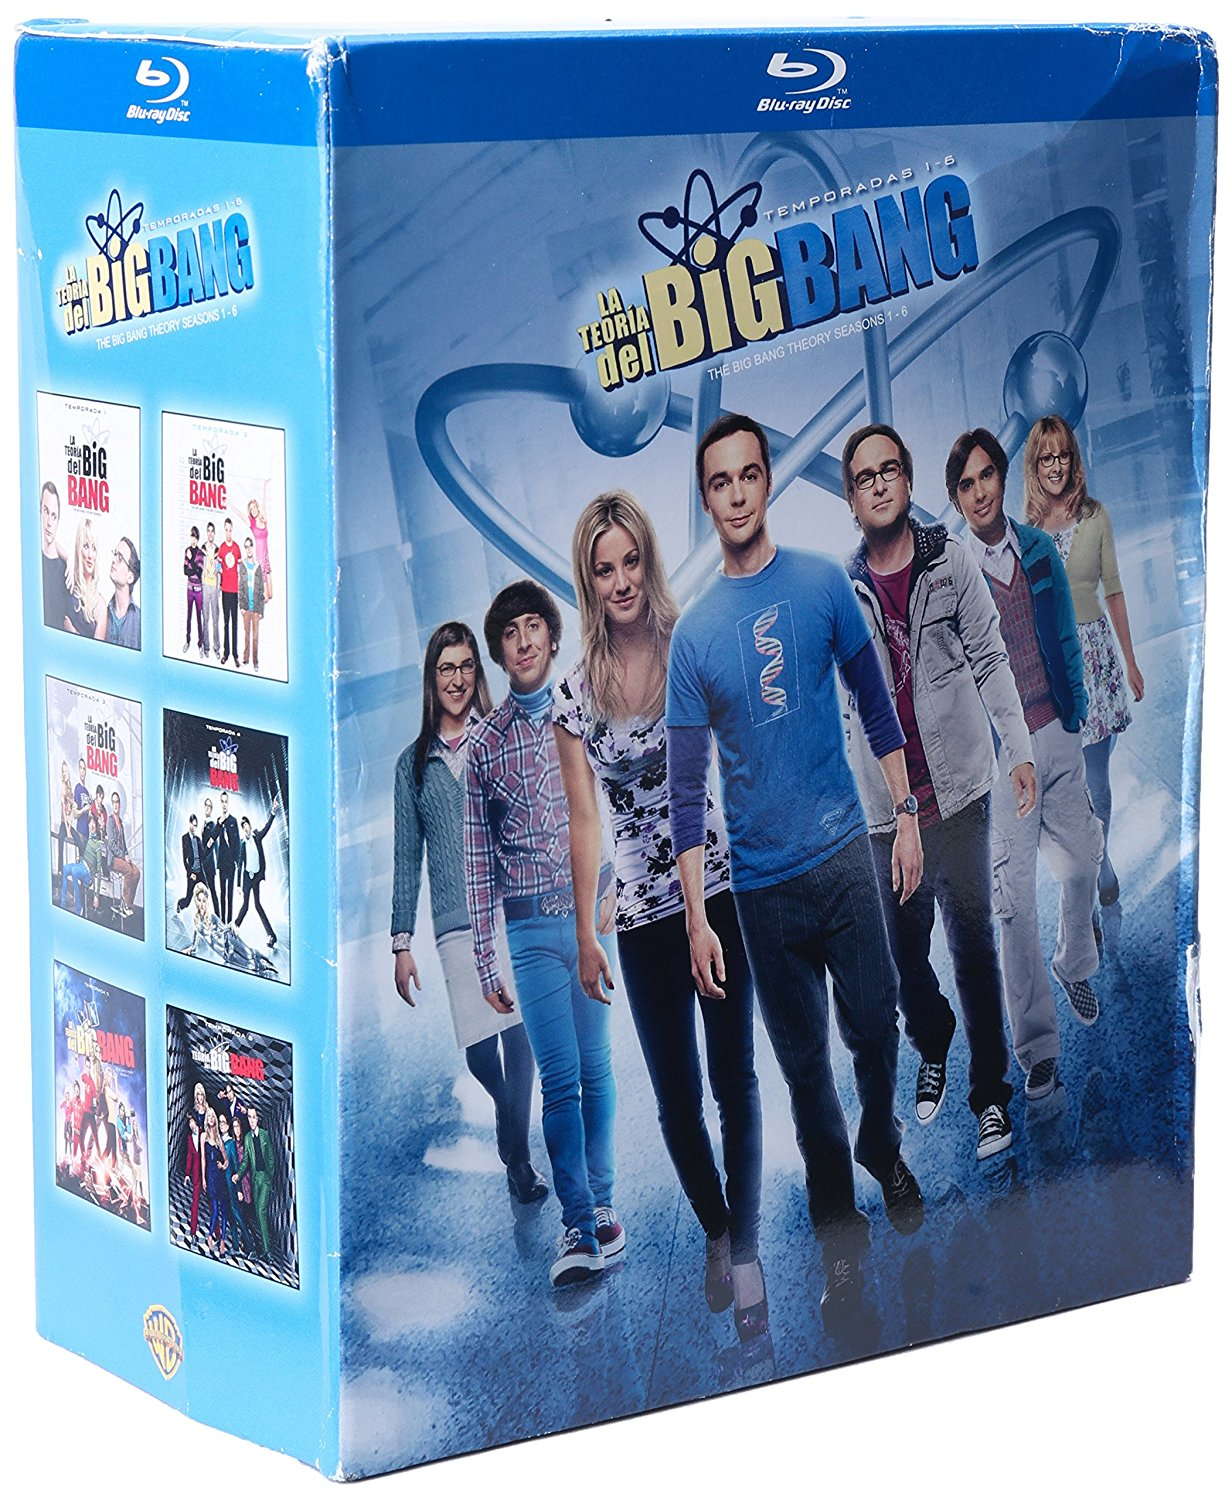 Amazon: Temporada 1 – 6 The Big Bang Theory a $475